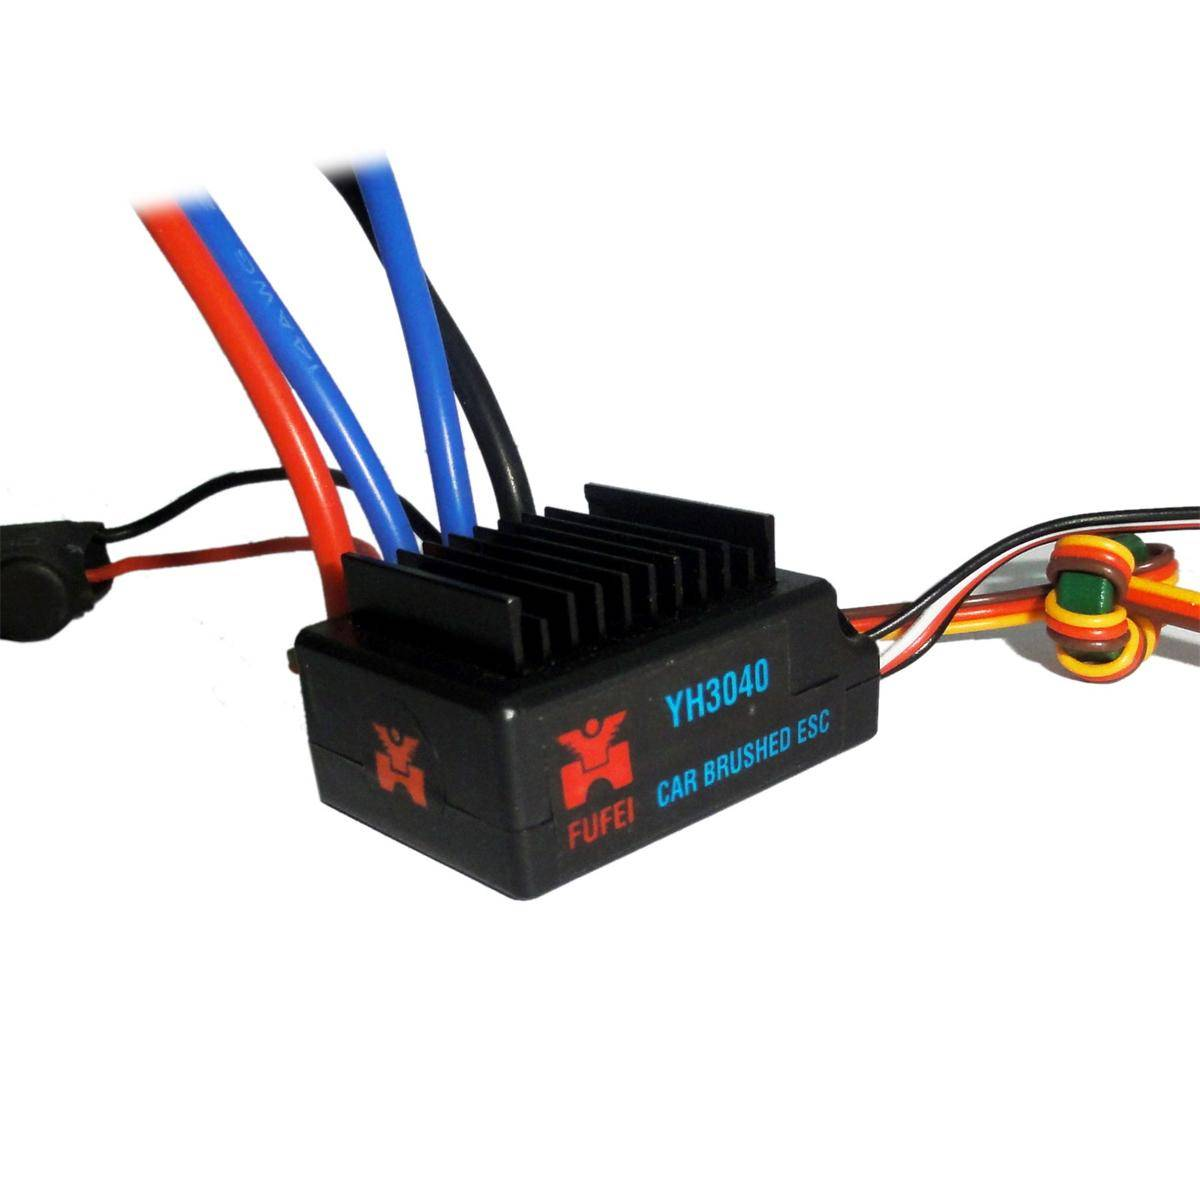 40a brushled esc for car toy from china